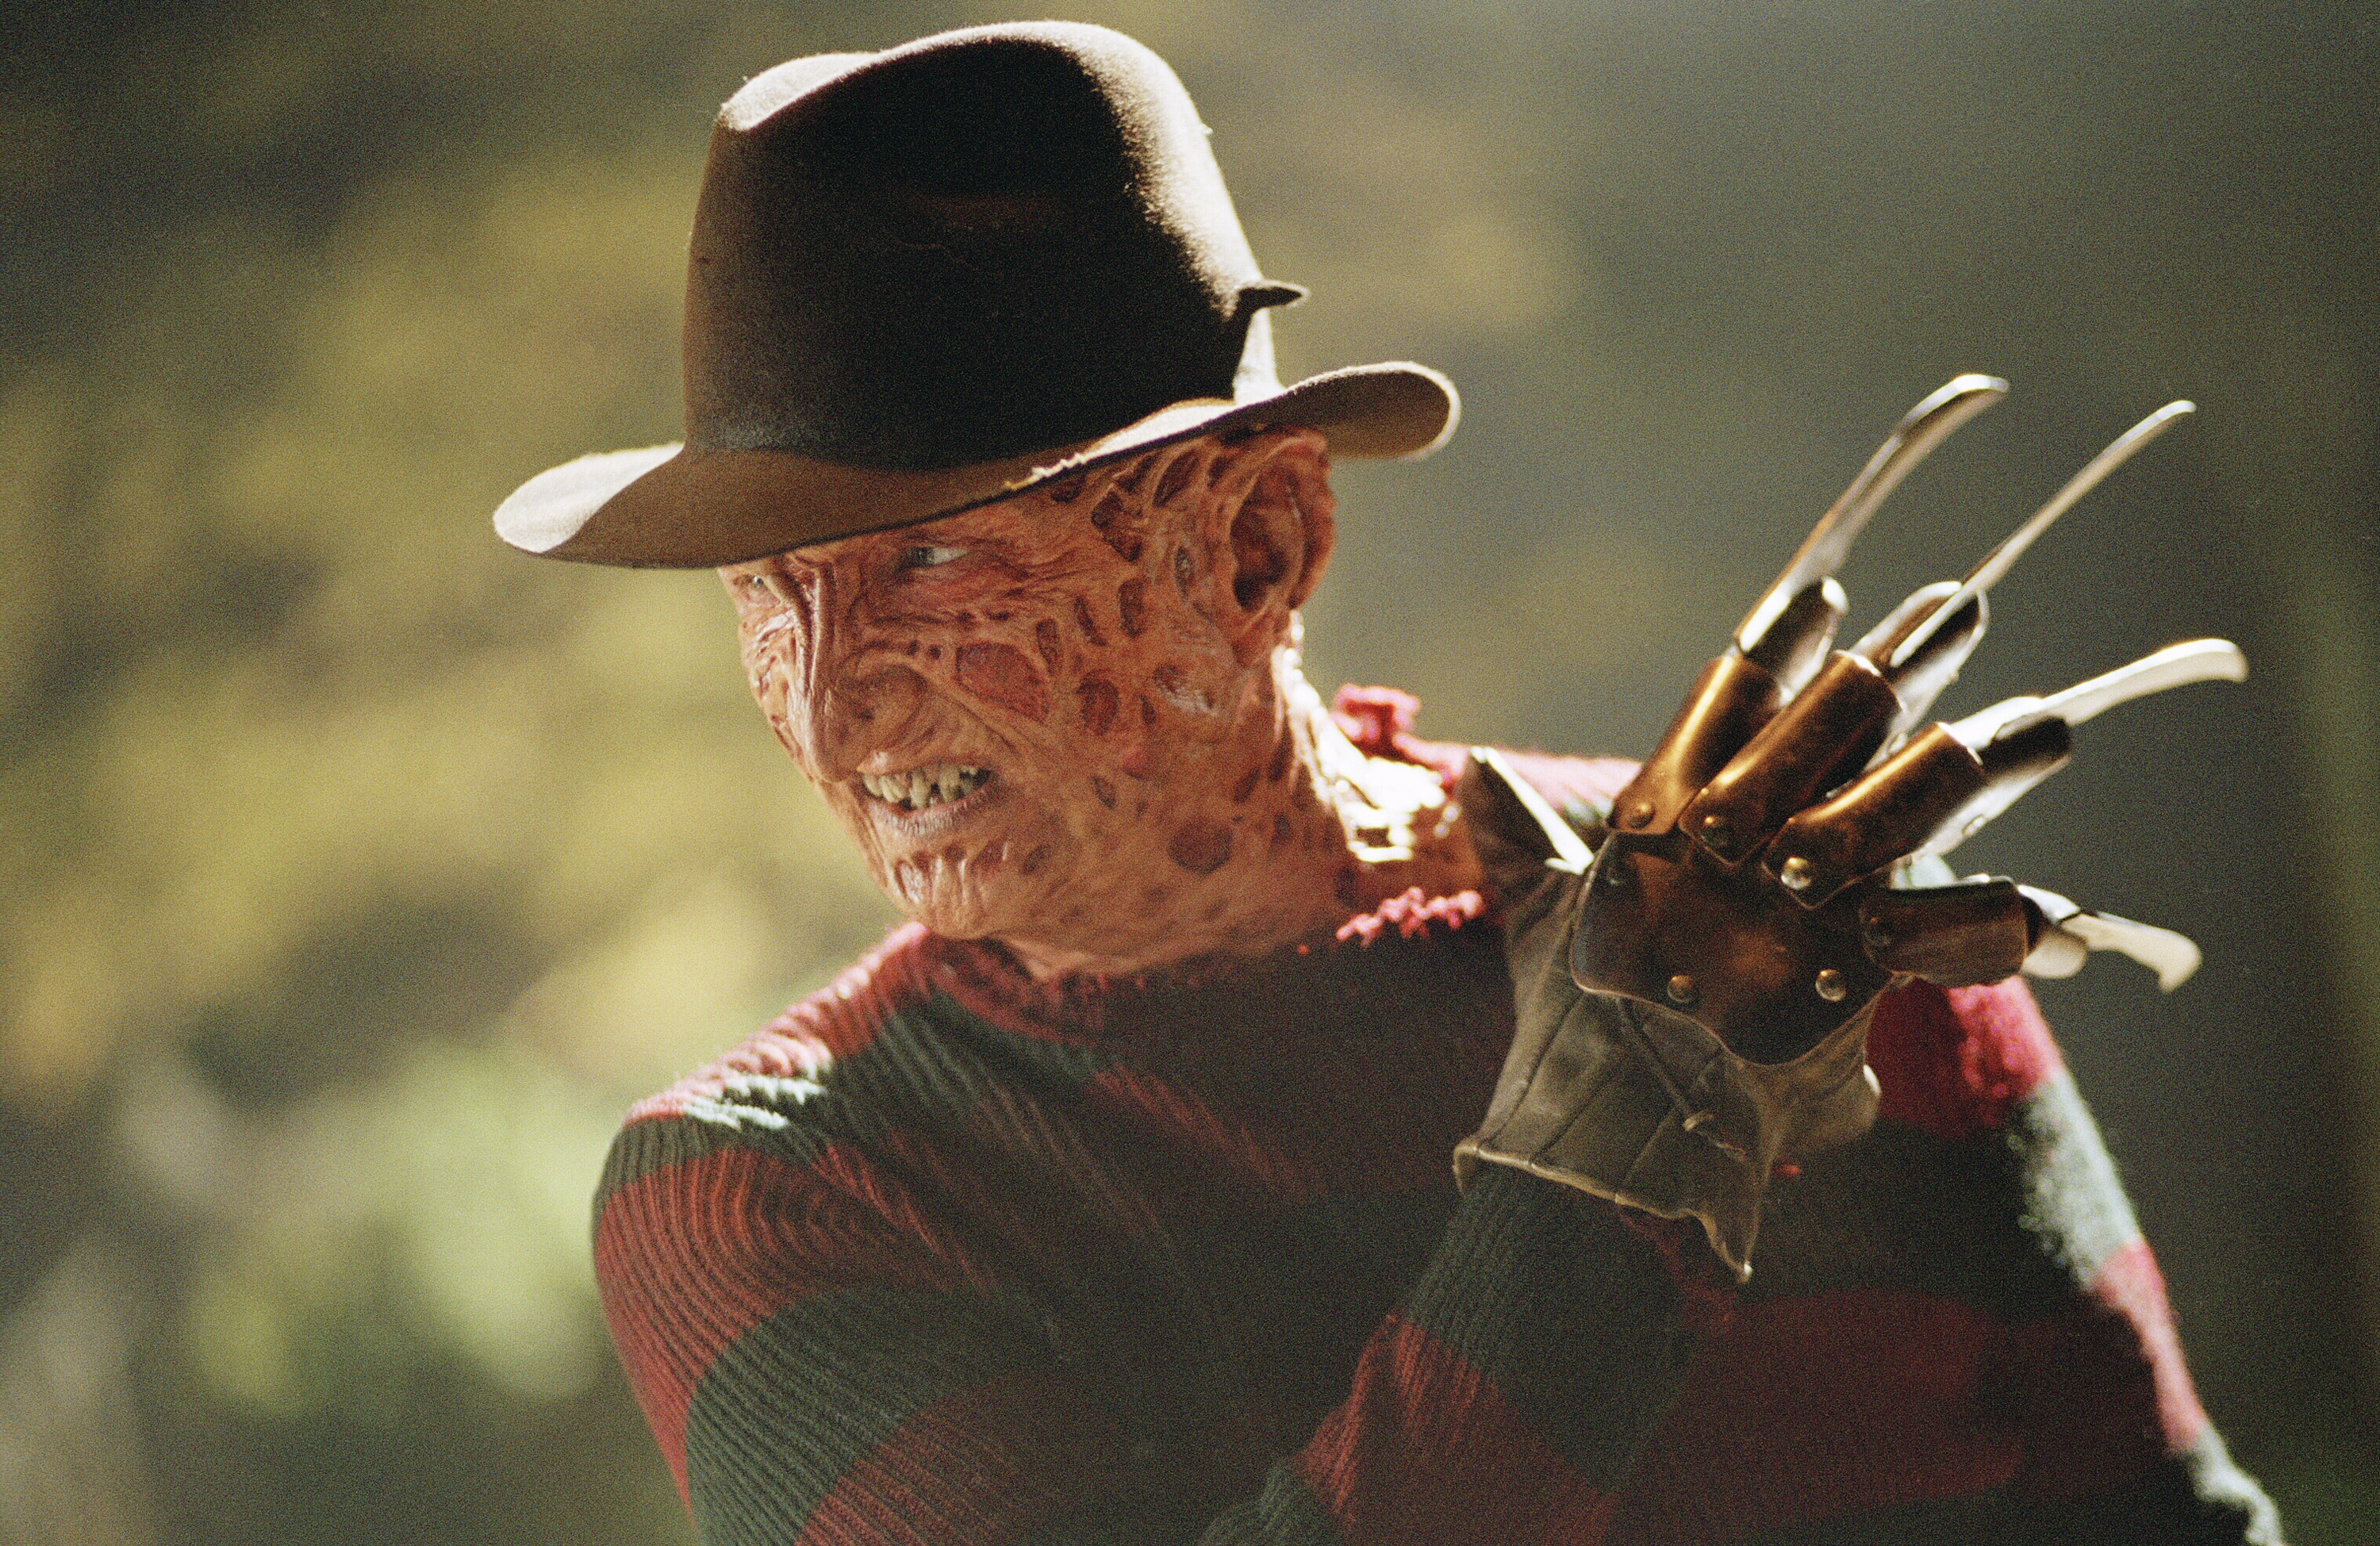 freddy kruger Beast from HD Wallpaper